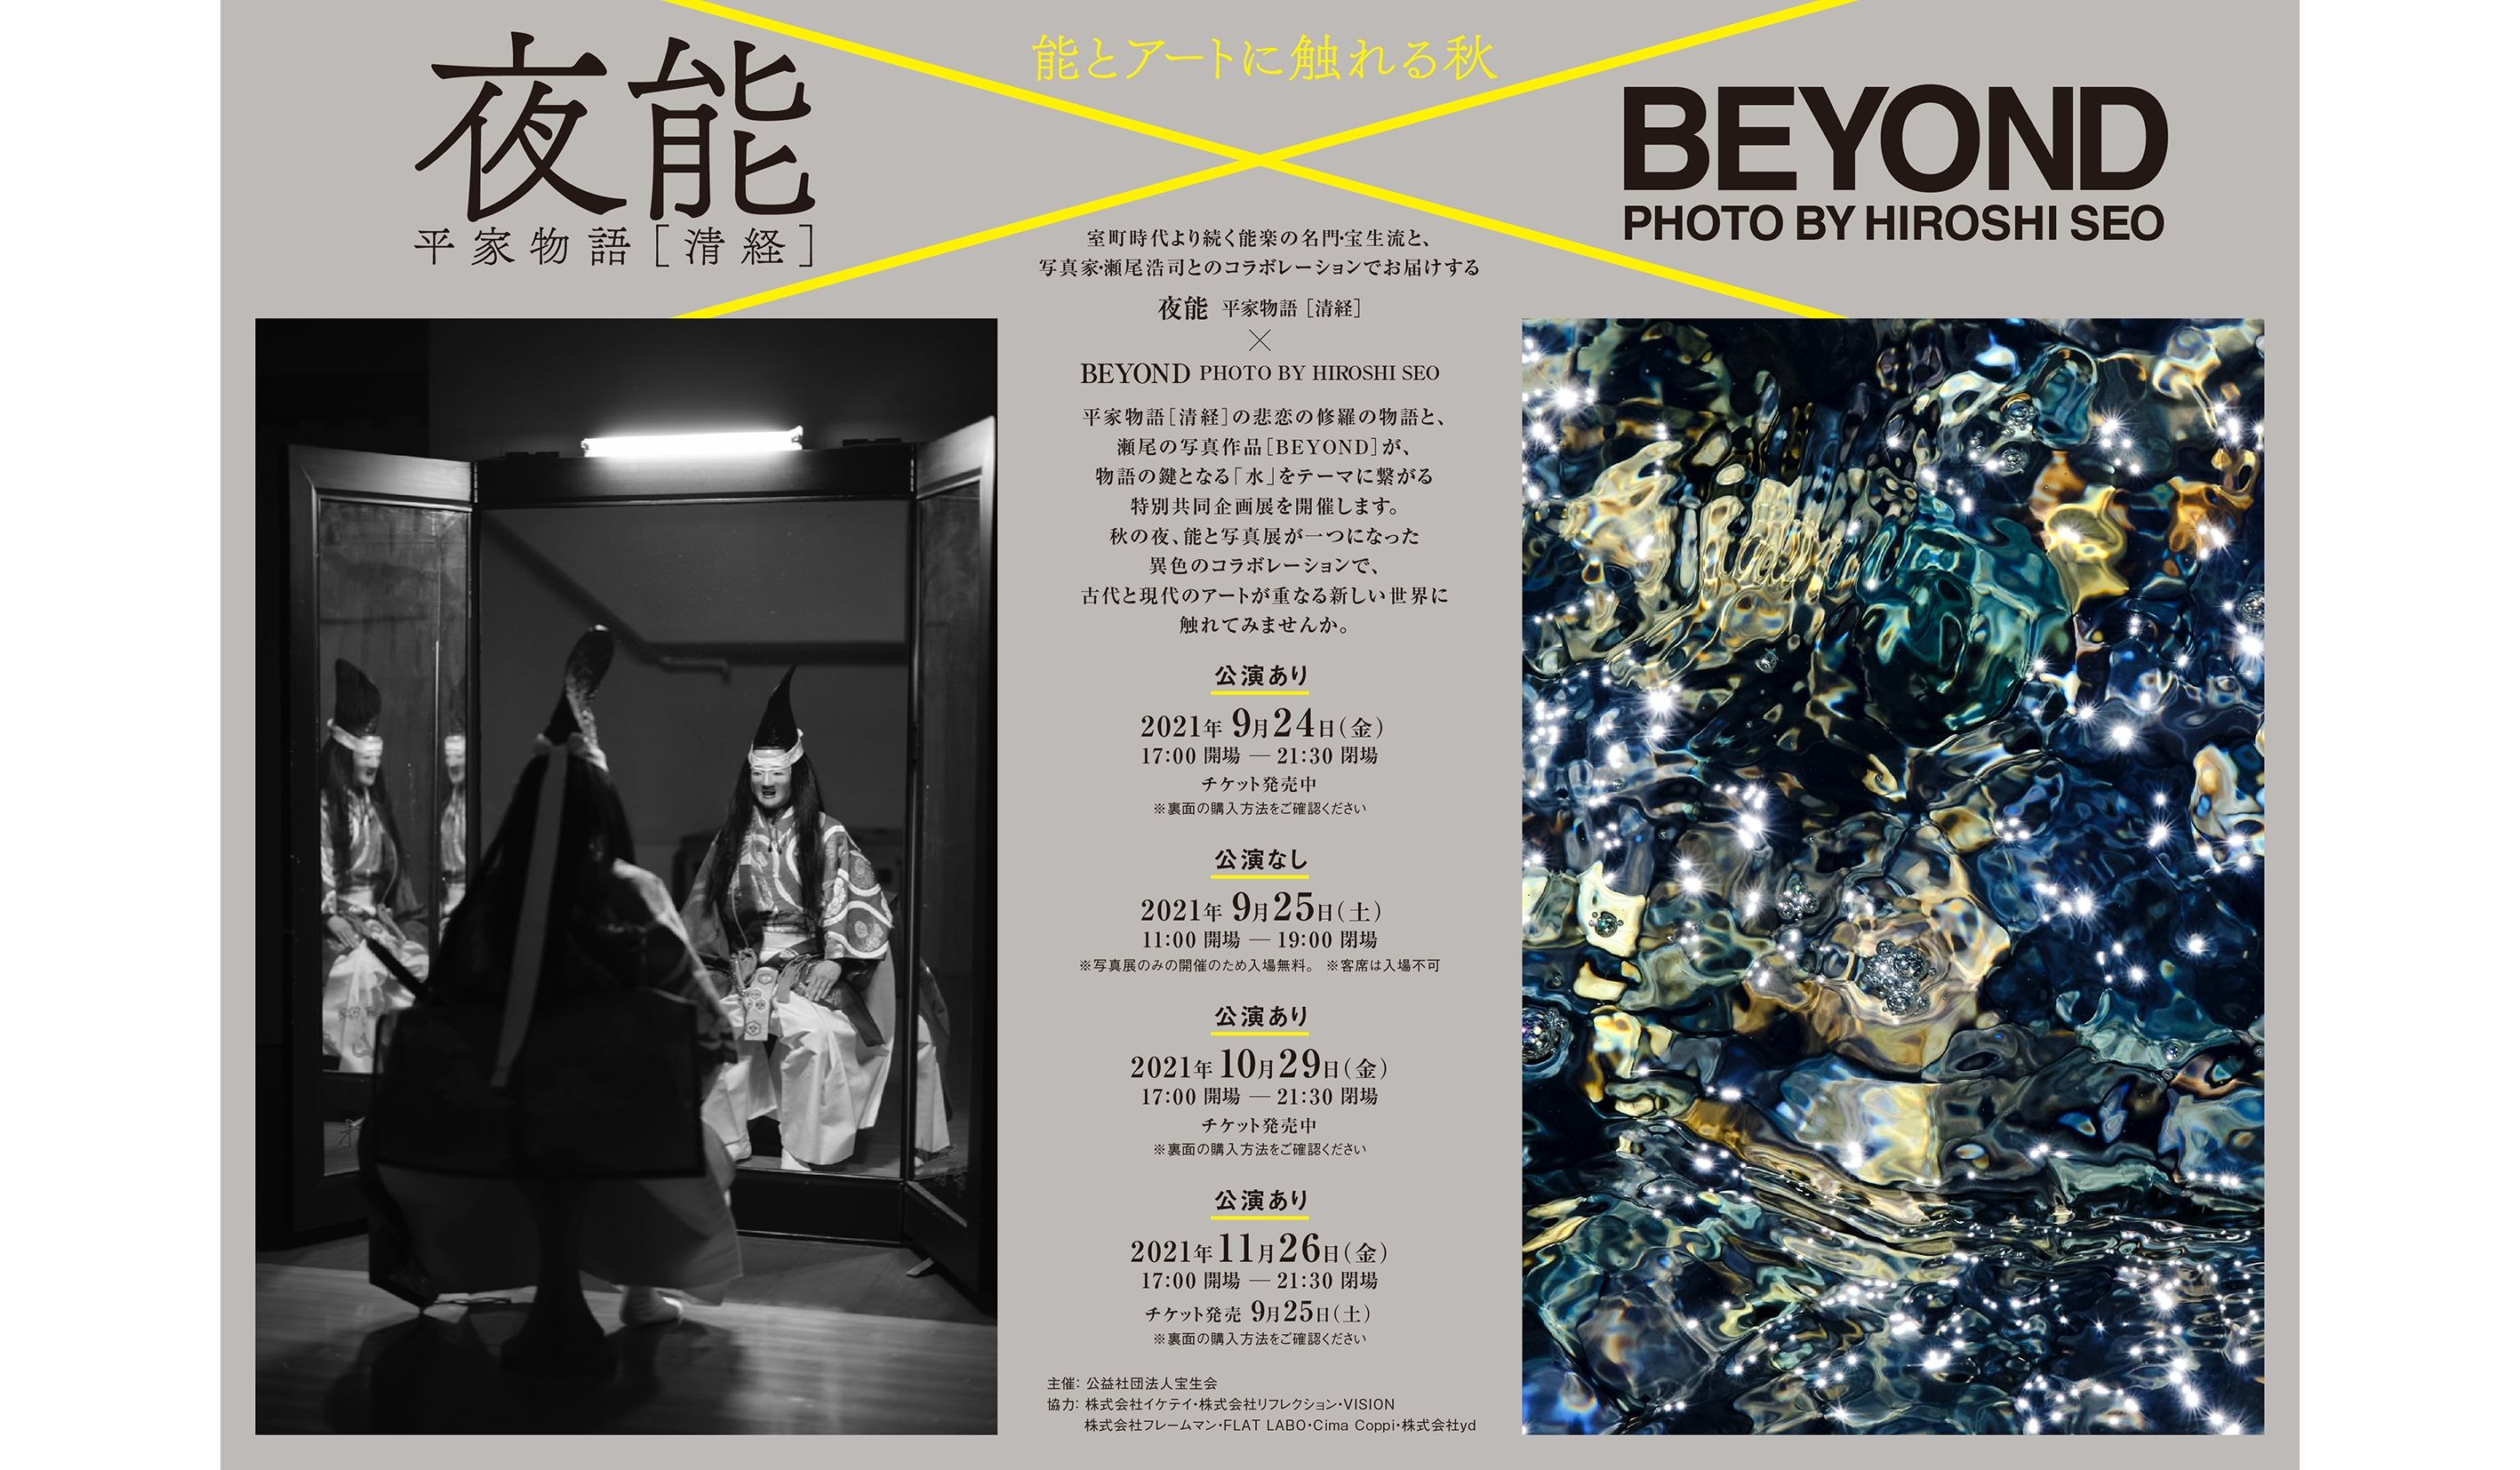 noh-beyond_01fly_1f_00